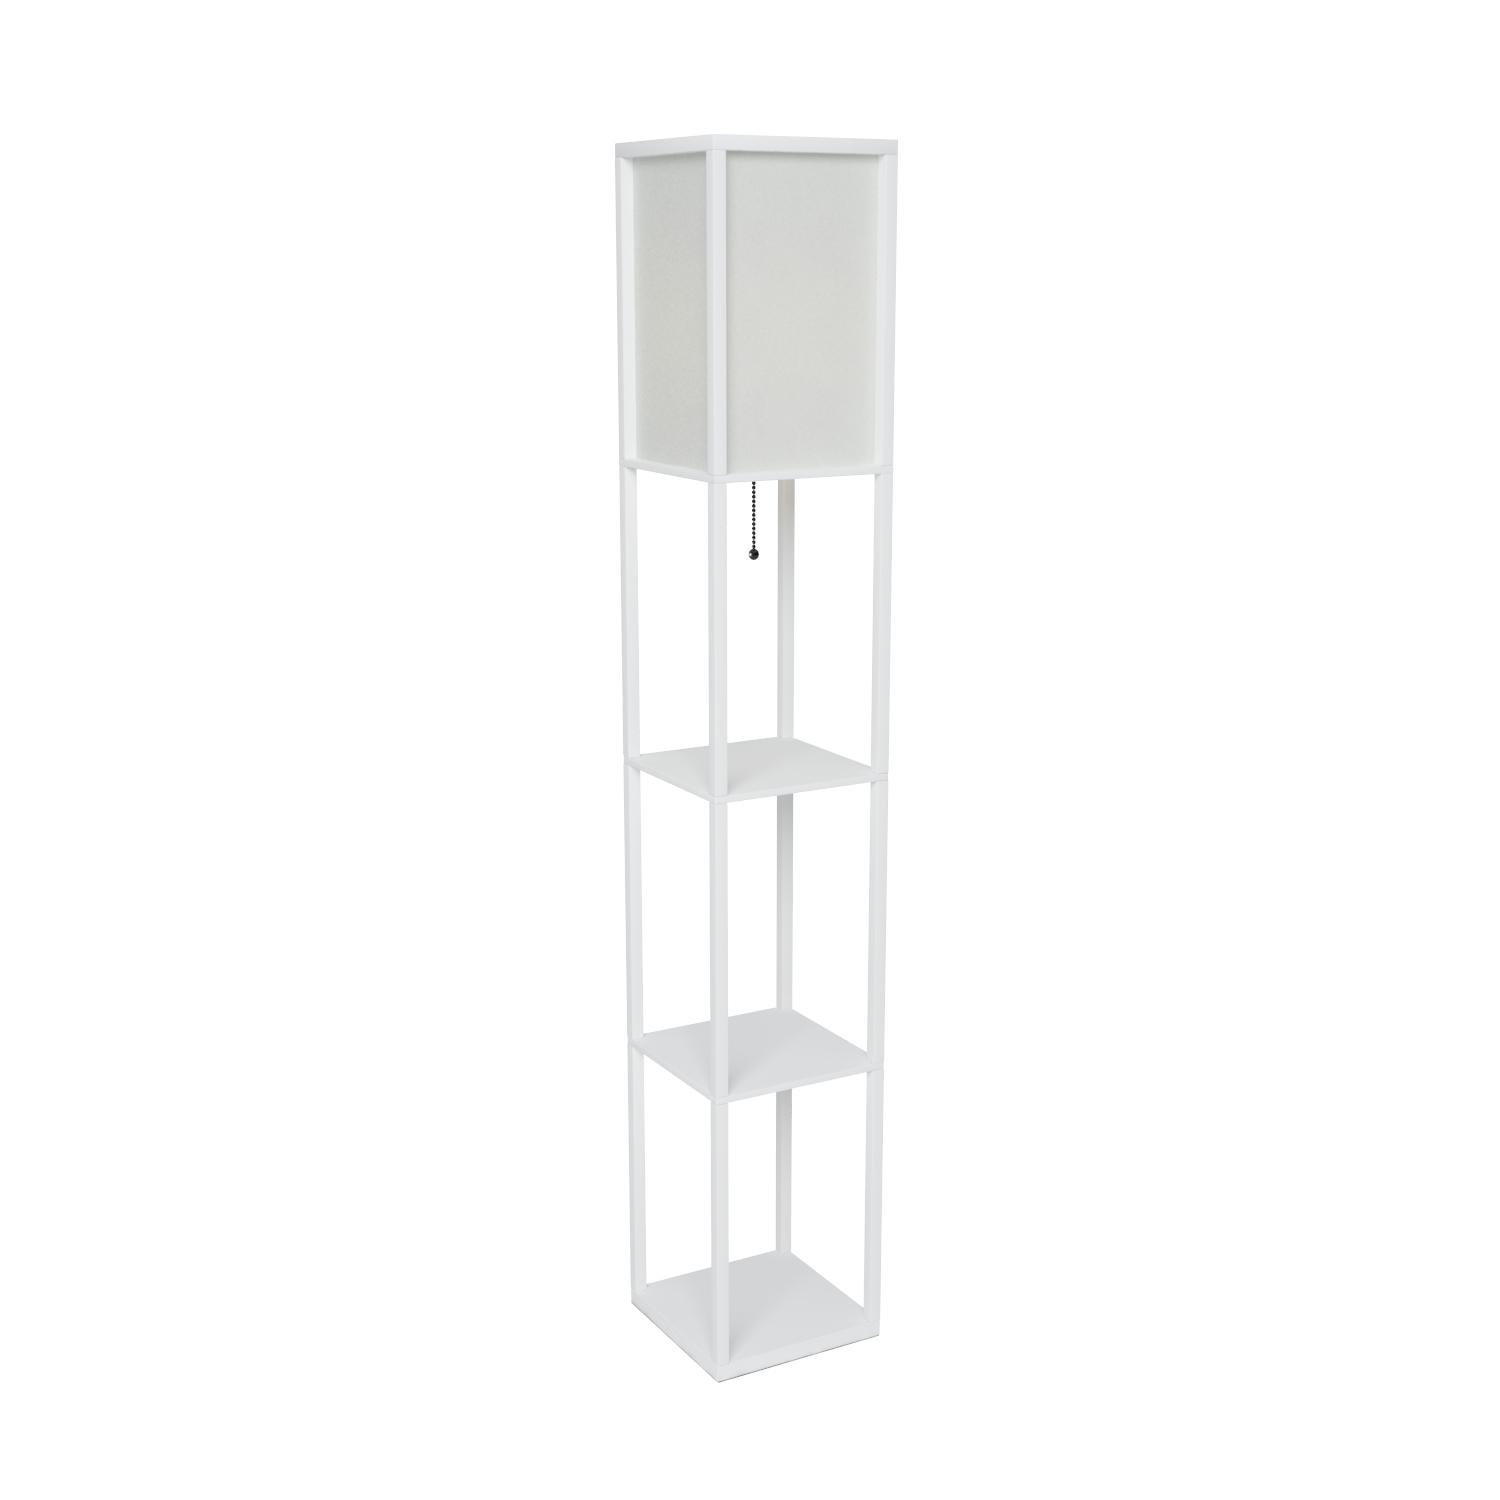 Simple Designs LF1014-WHT Floor Lamp Etagere Organizer Storage Shelf with Linen Shade, White by Simple Designs Home (Image #7)